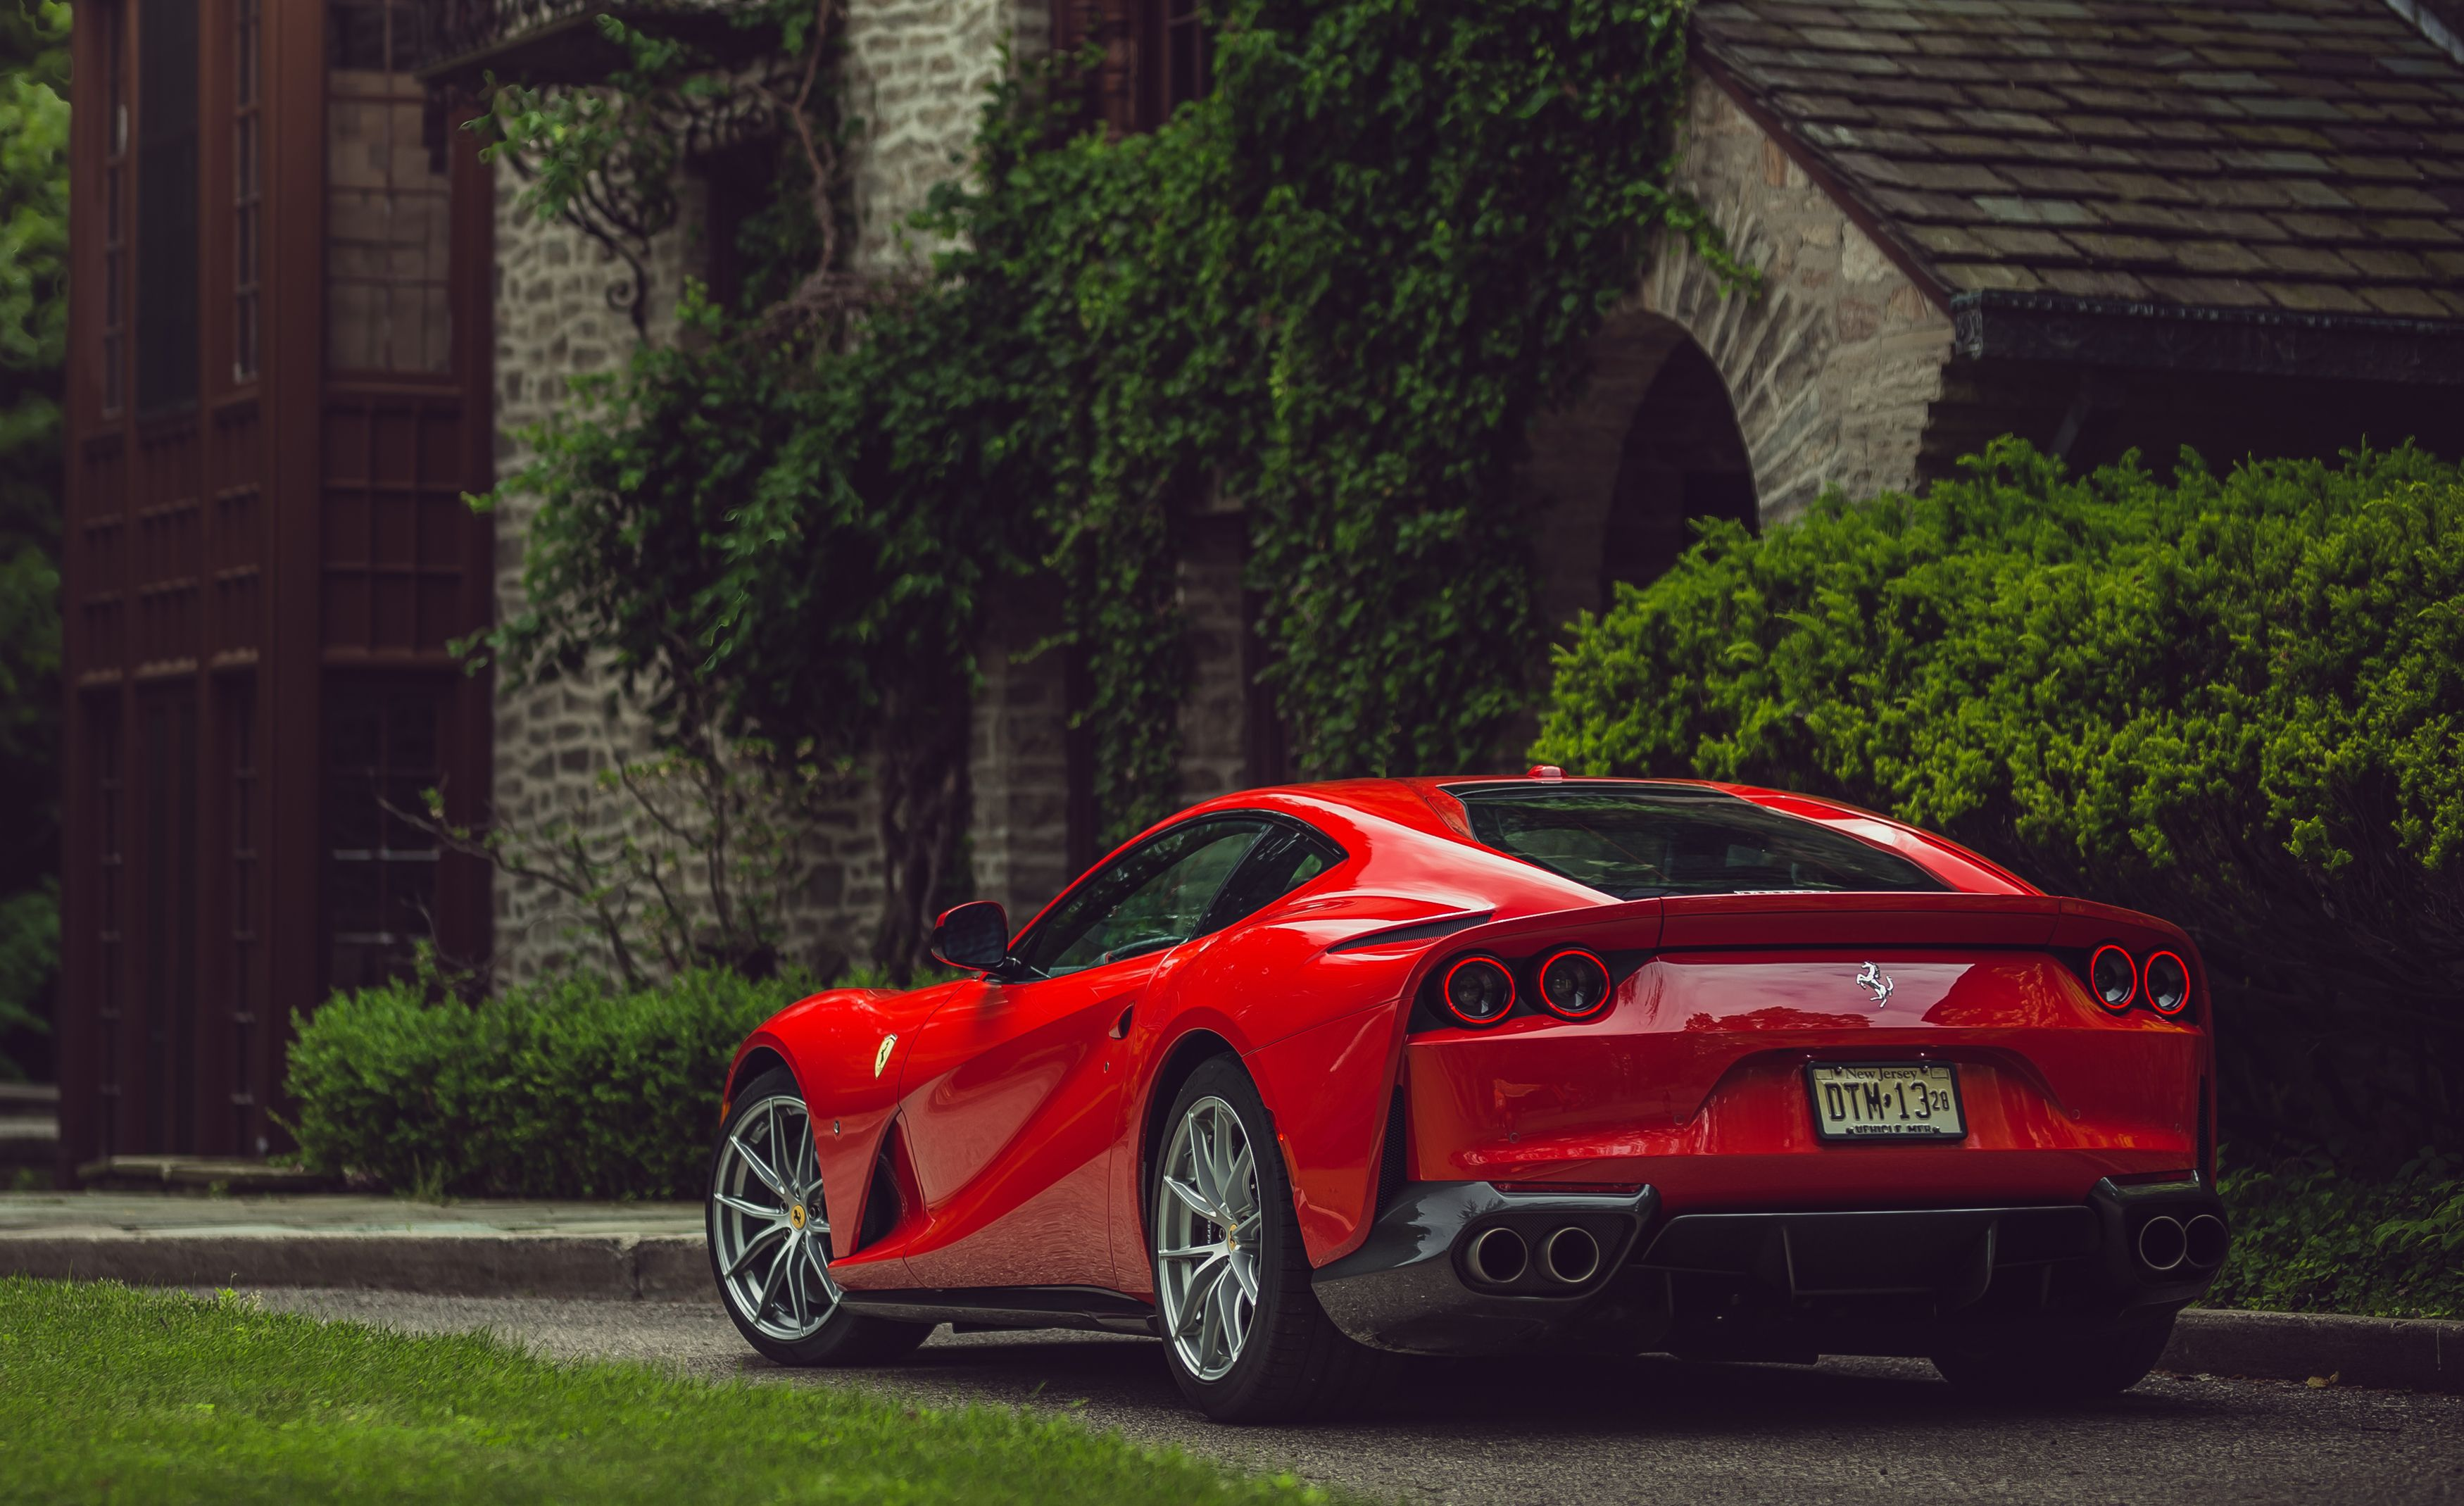 2018 Ferrari 812 Superfast Reviews Price 81 Town Coupe Engine Diagram Photos And Specs Car Driver